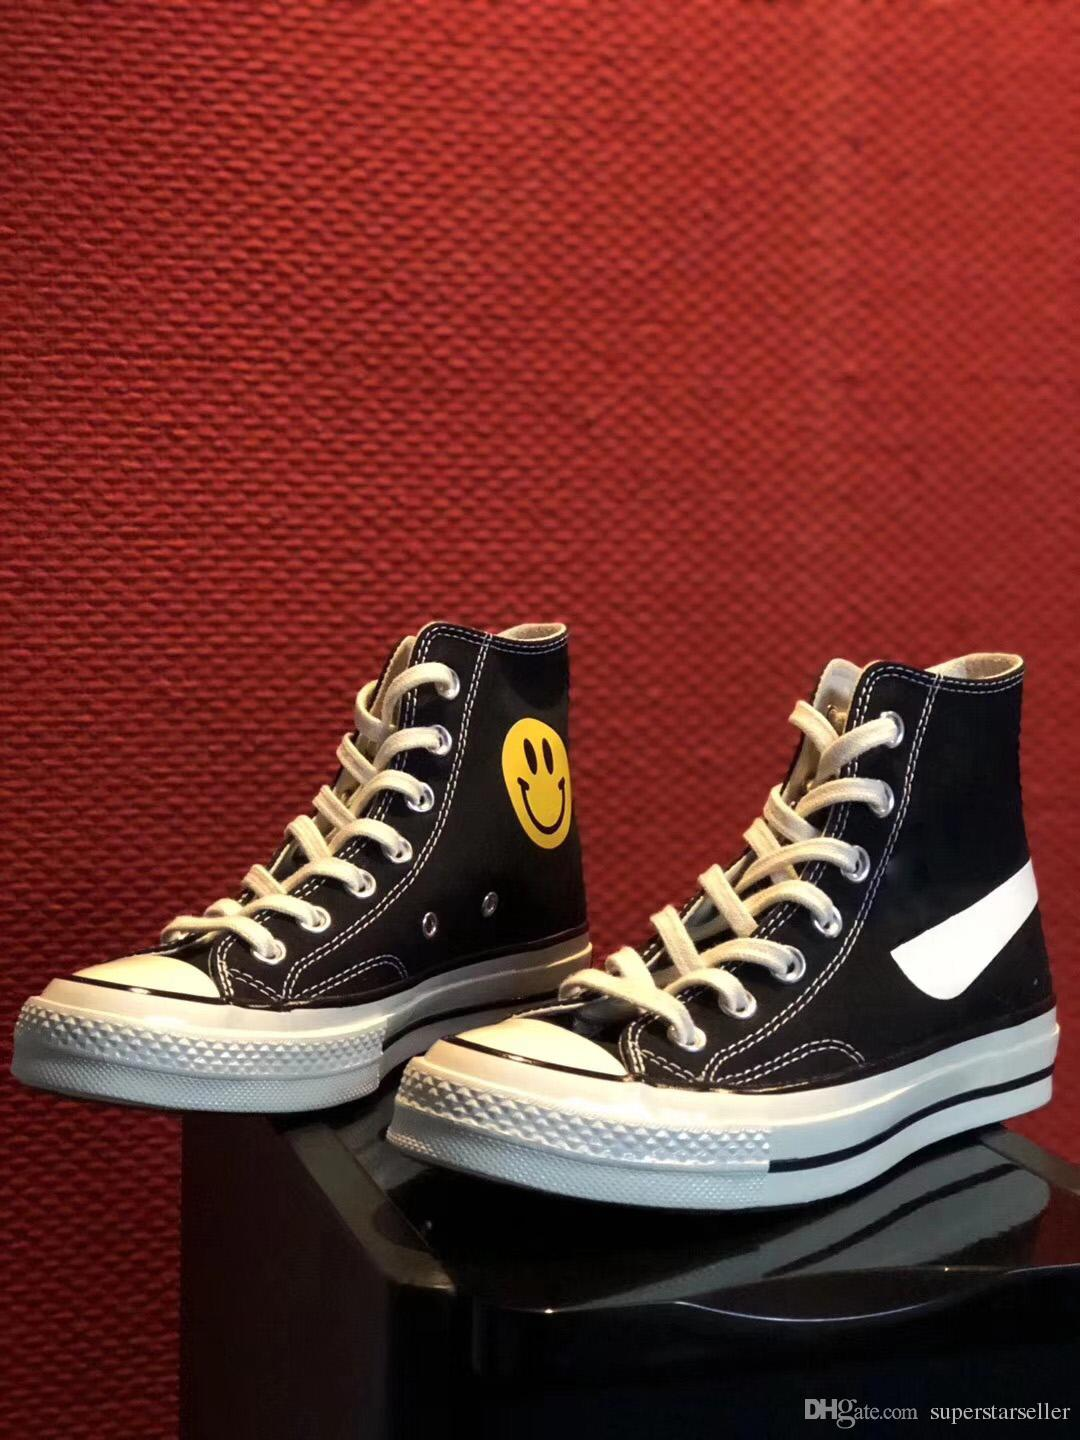 82d4d91328d 2018 New Chinatown Market X 1970s Chuck Smiling Face All Canvas Shoes Smile  Star Designer Skate Shoes Men Women Casual Sneakers Chaussures Sneakers  Online ...